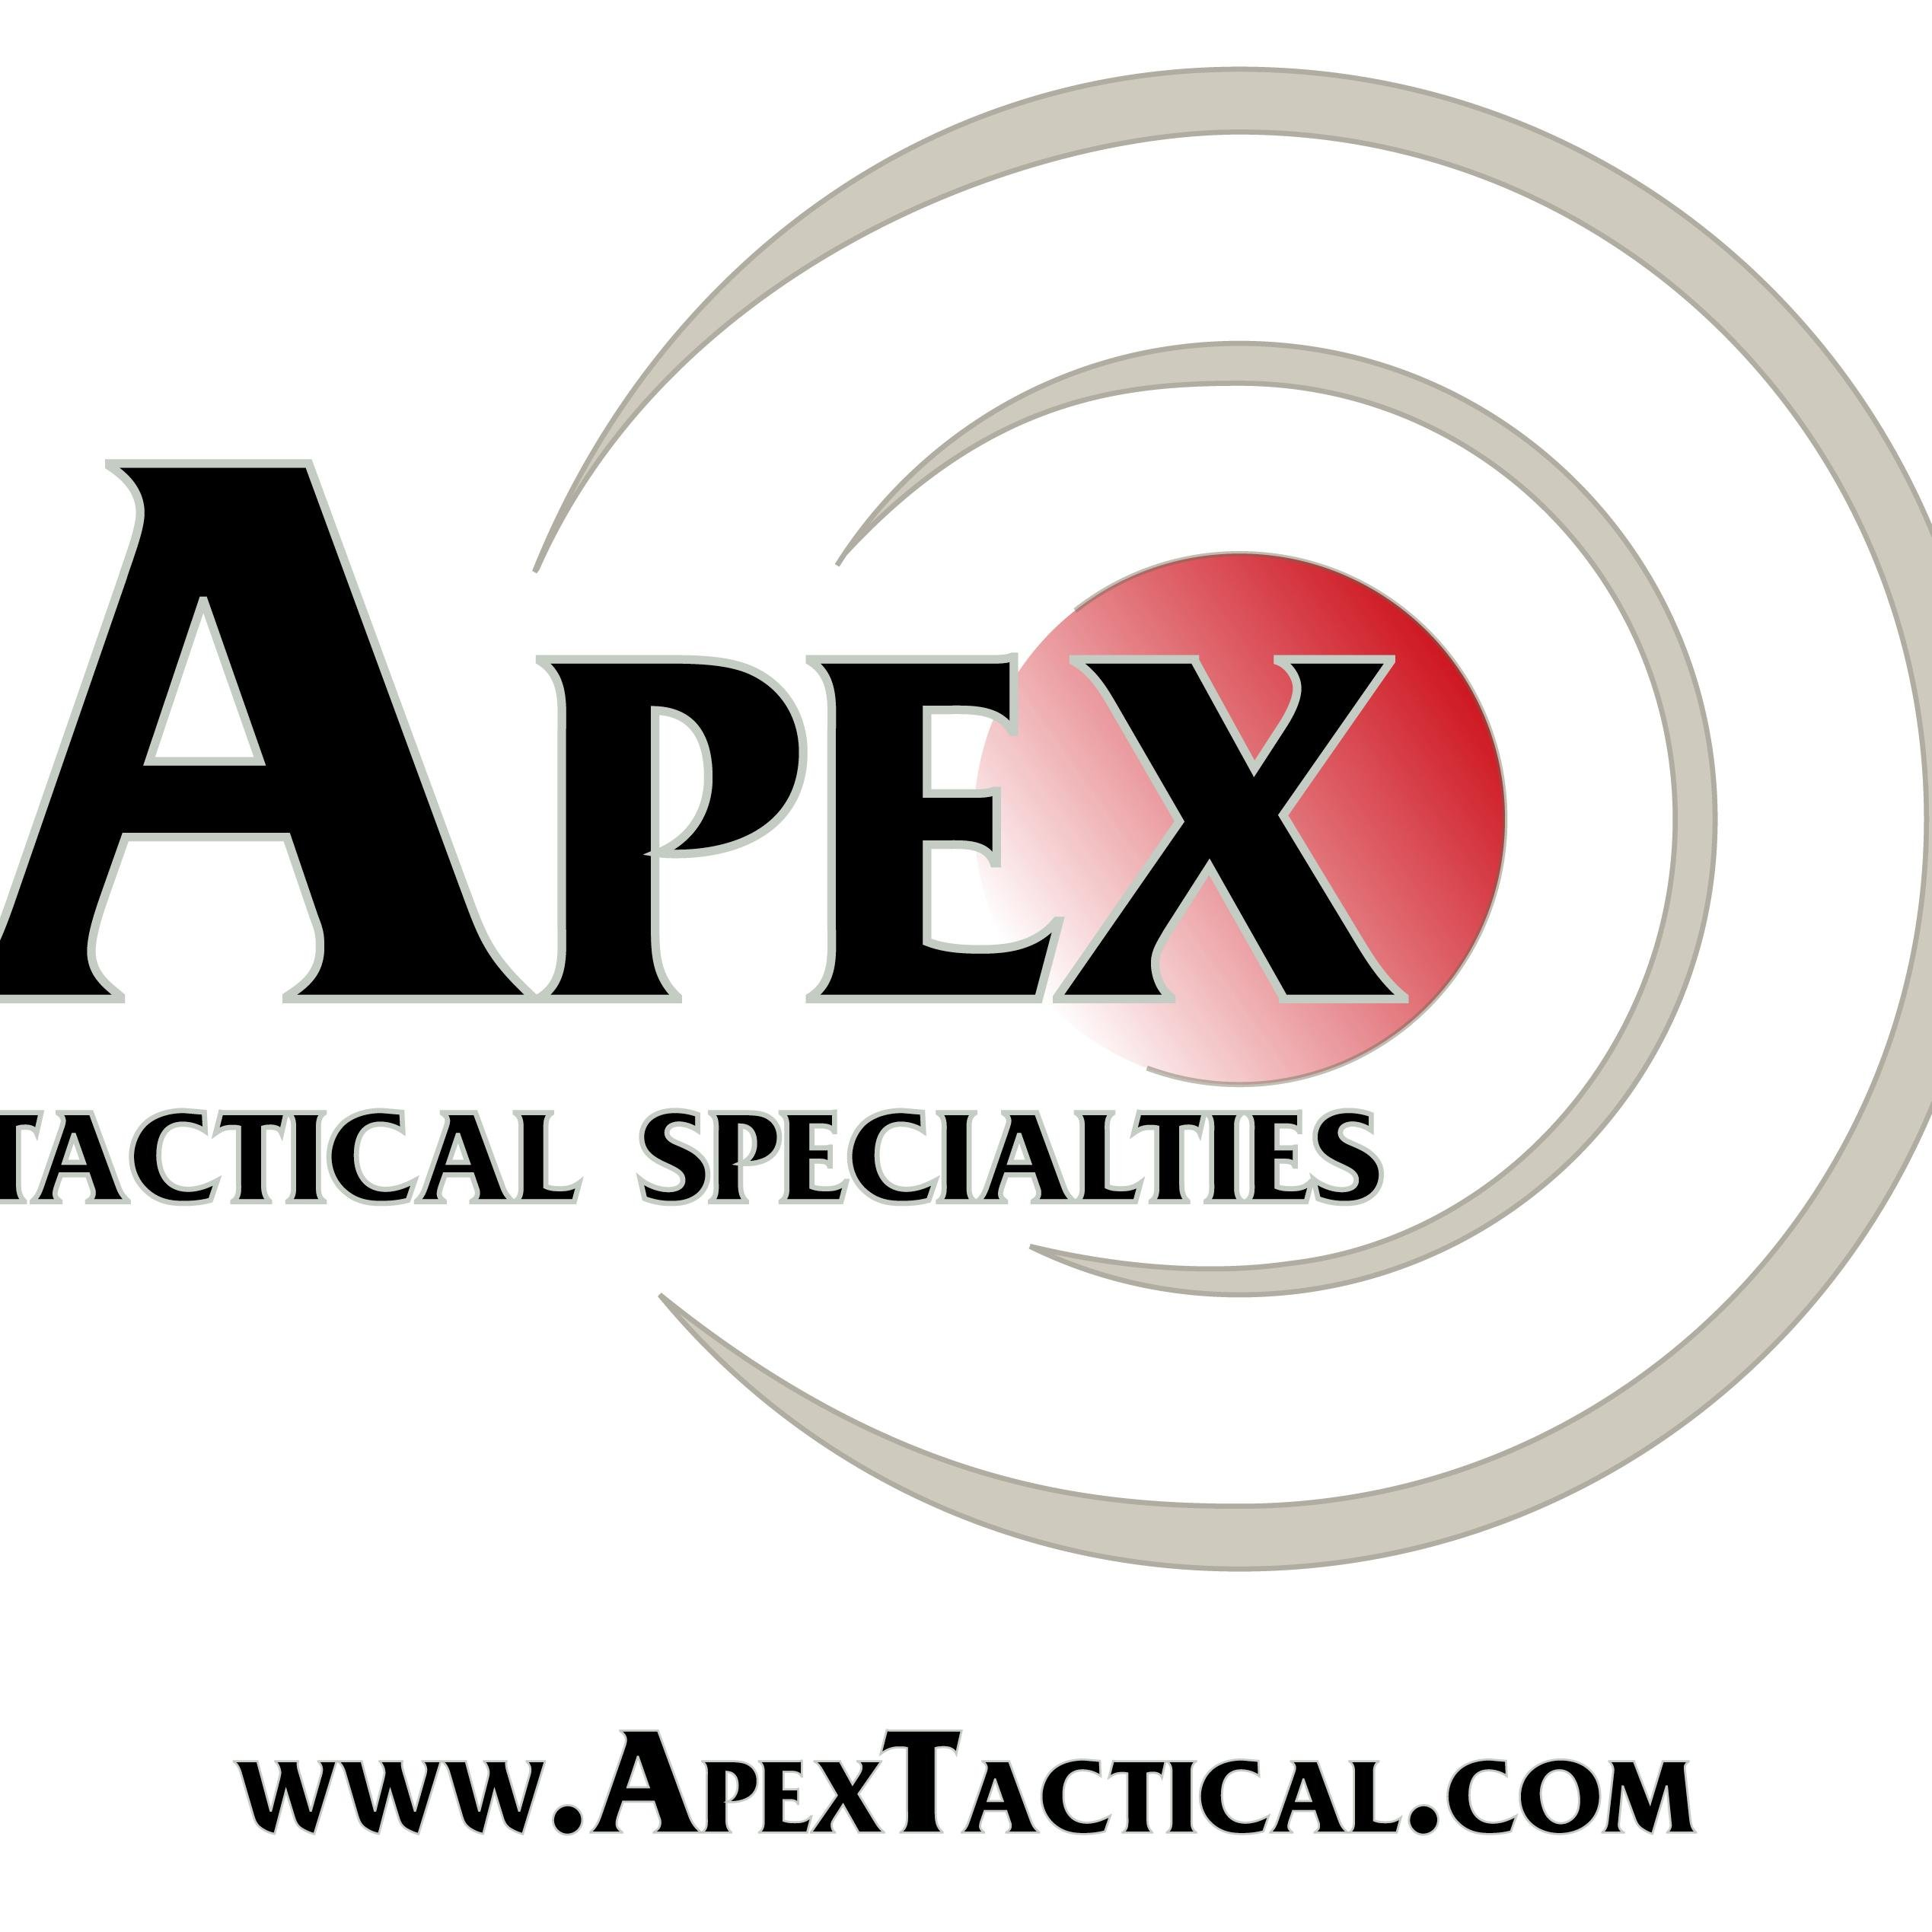 apex-logo.jpeg